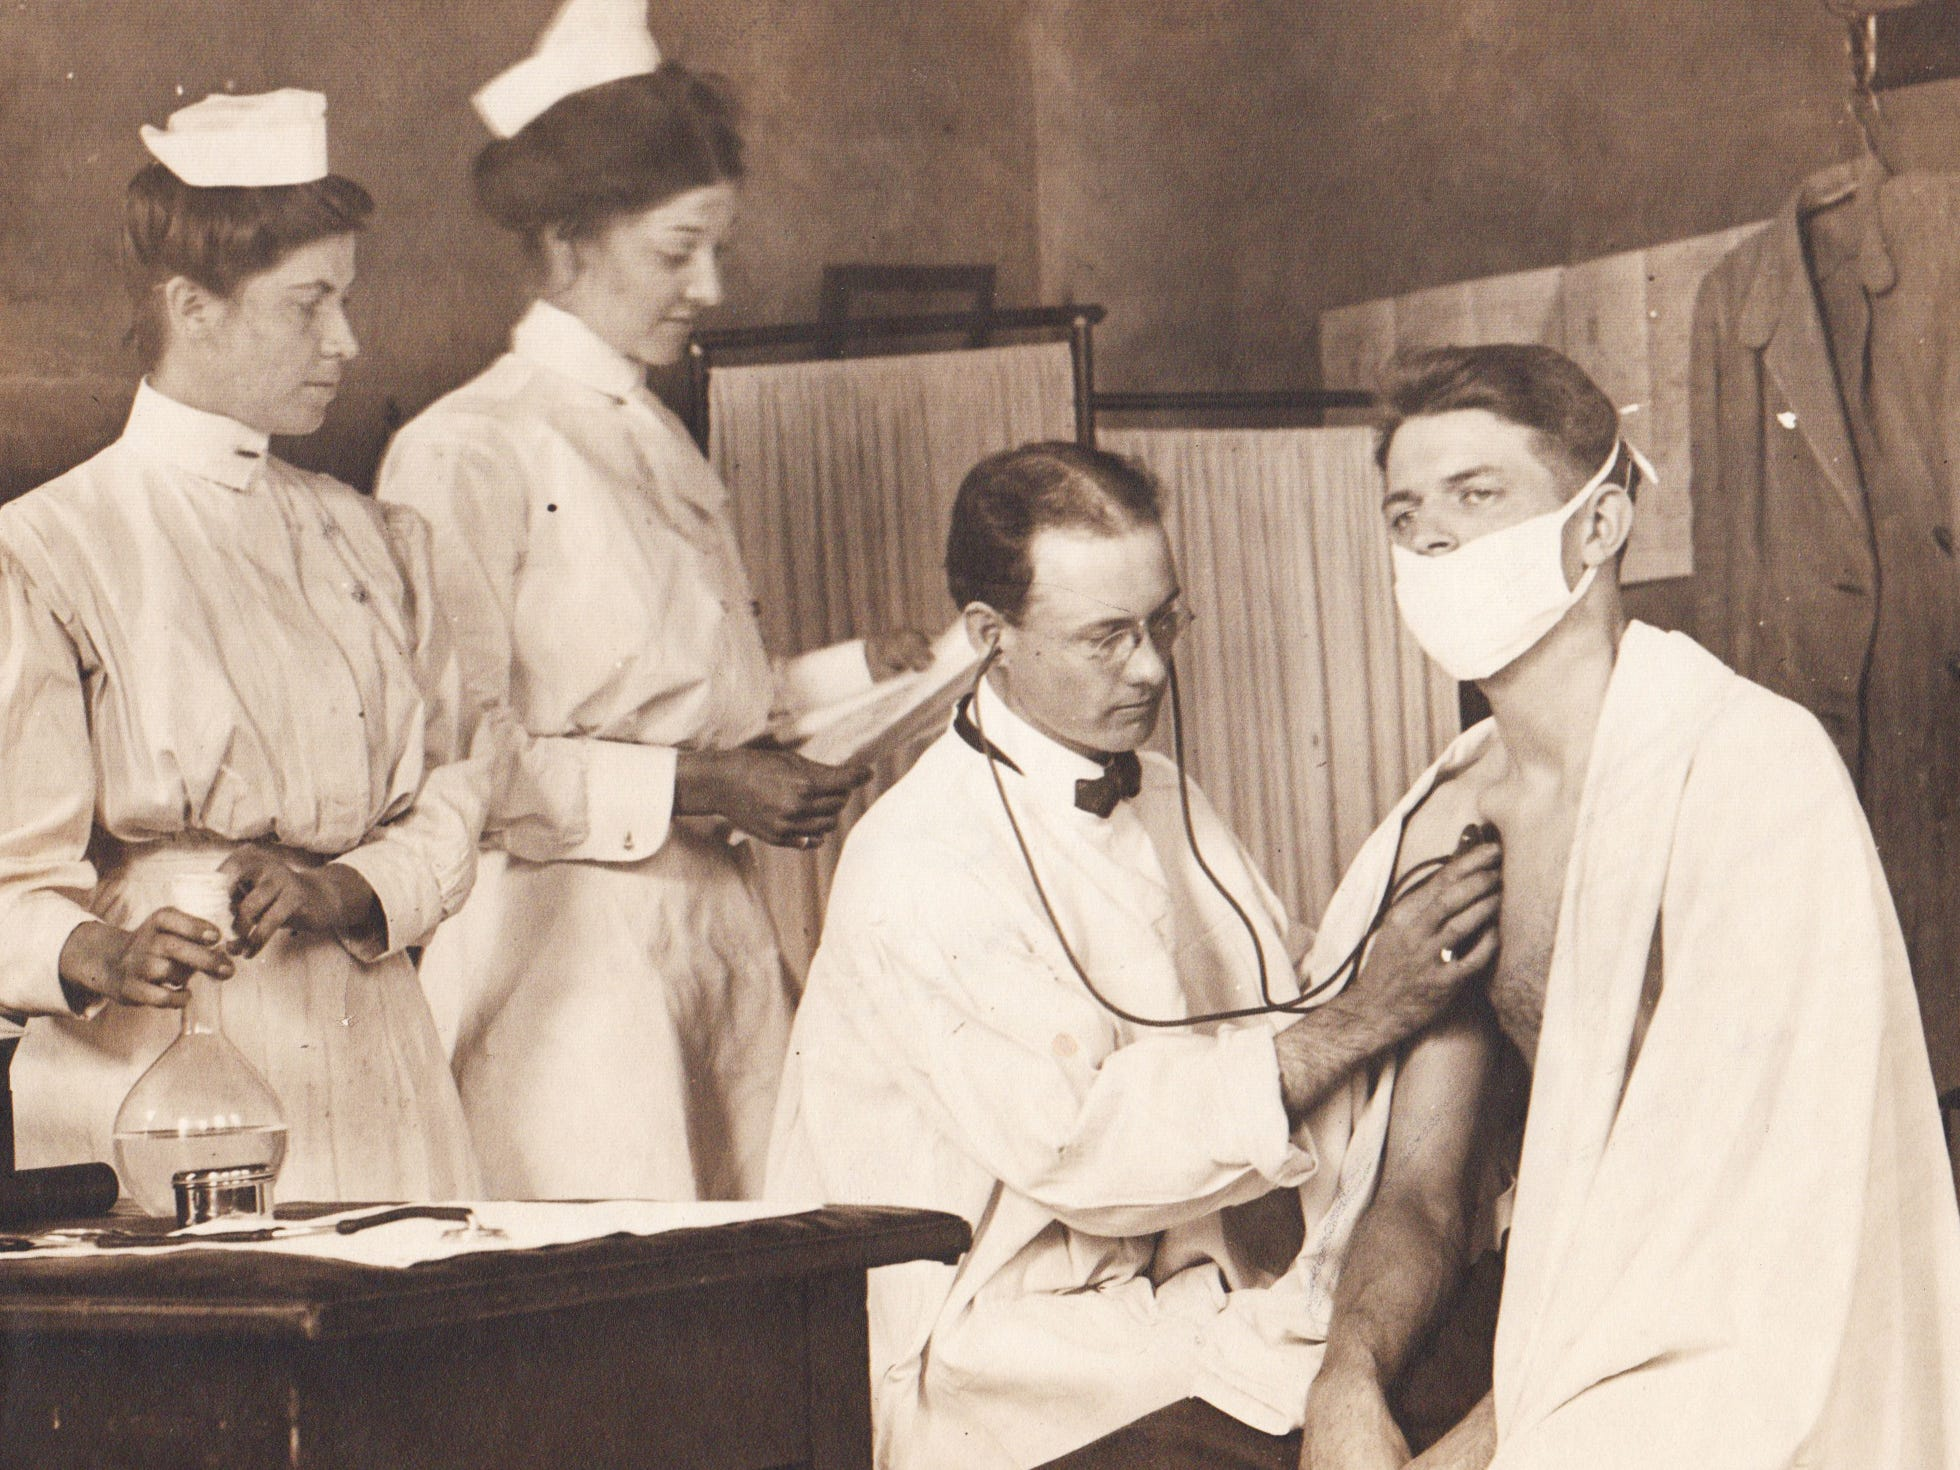 Dr. F. E. Jackson makes an examination of a patient at the City Dispensary as Mary McCoy (left) and Blanche Neff, nurses from the tuberculosis clinic visit assist.  1910 file photo